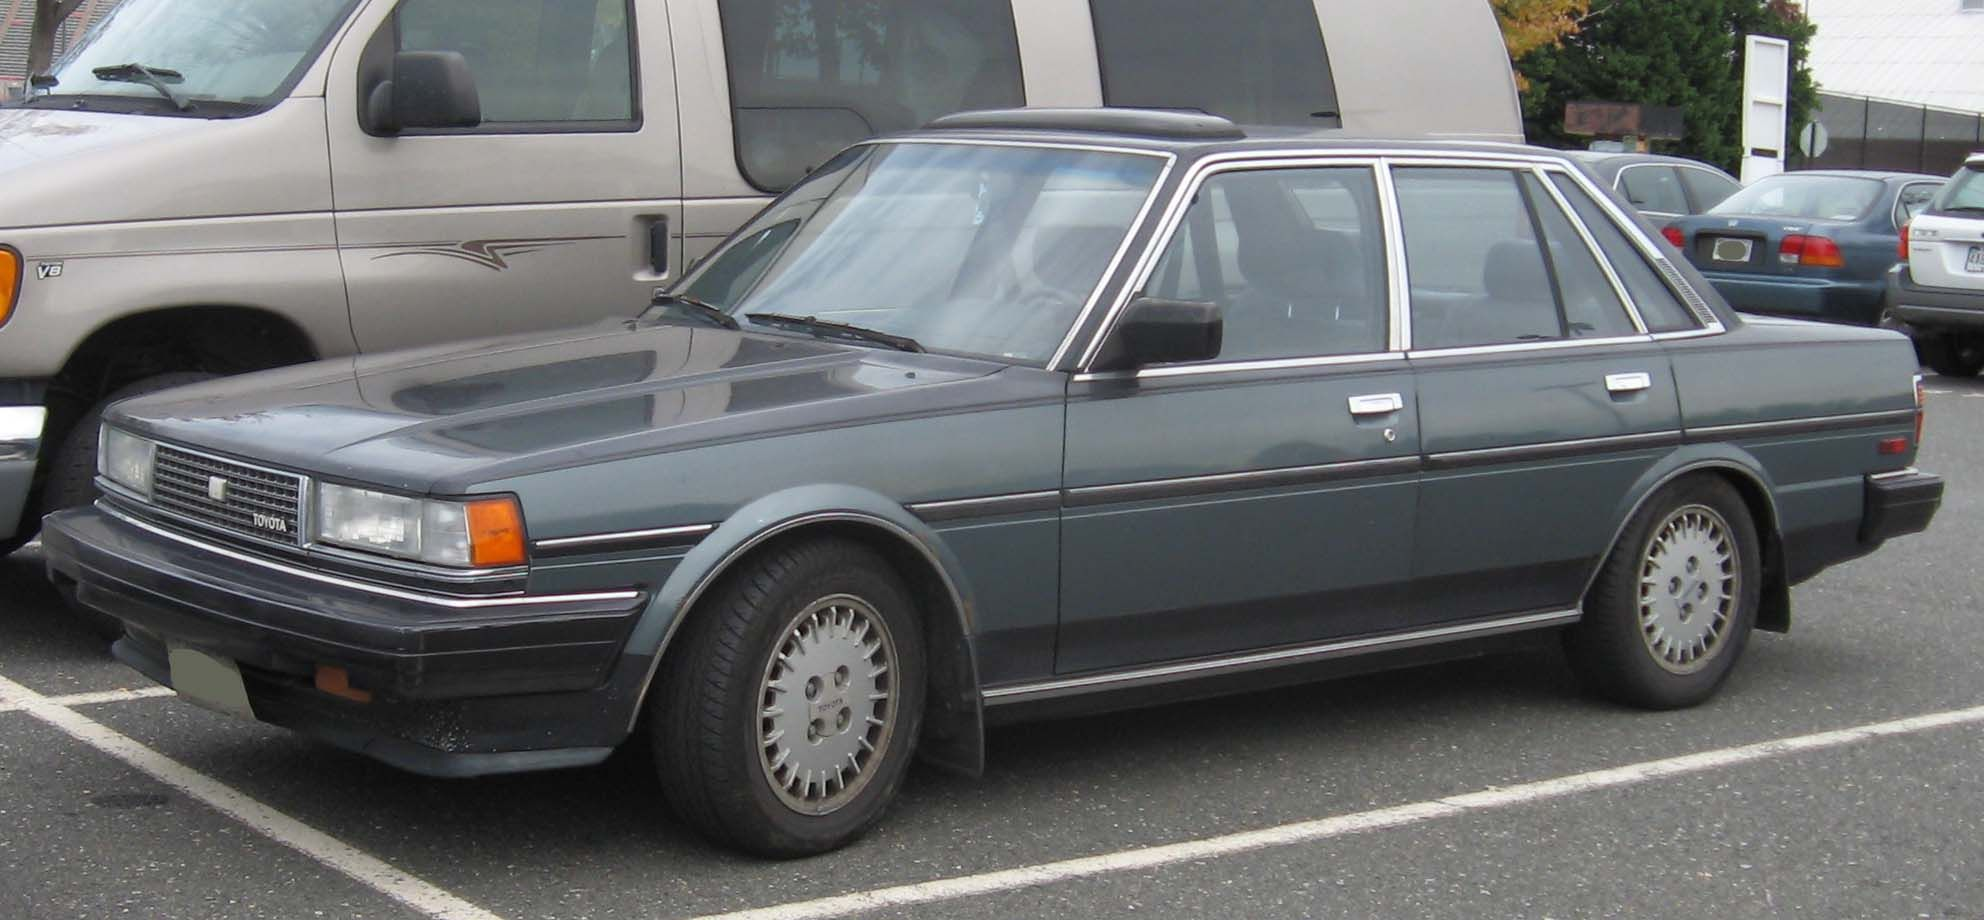 Side View Toyota Cressida Website About Cars トヨタ